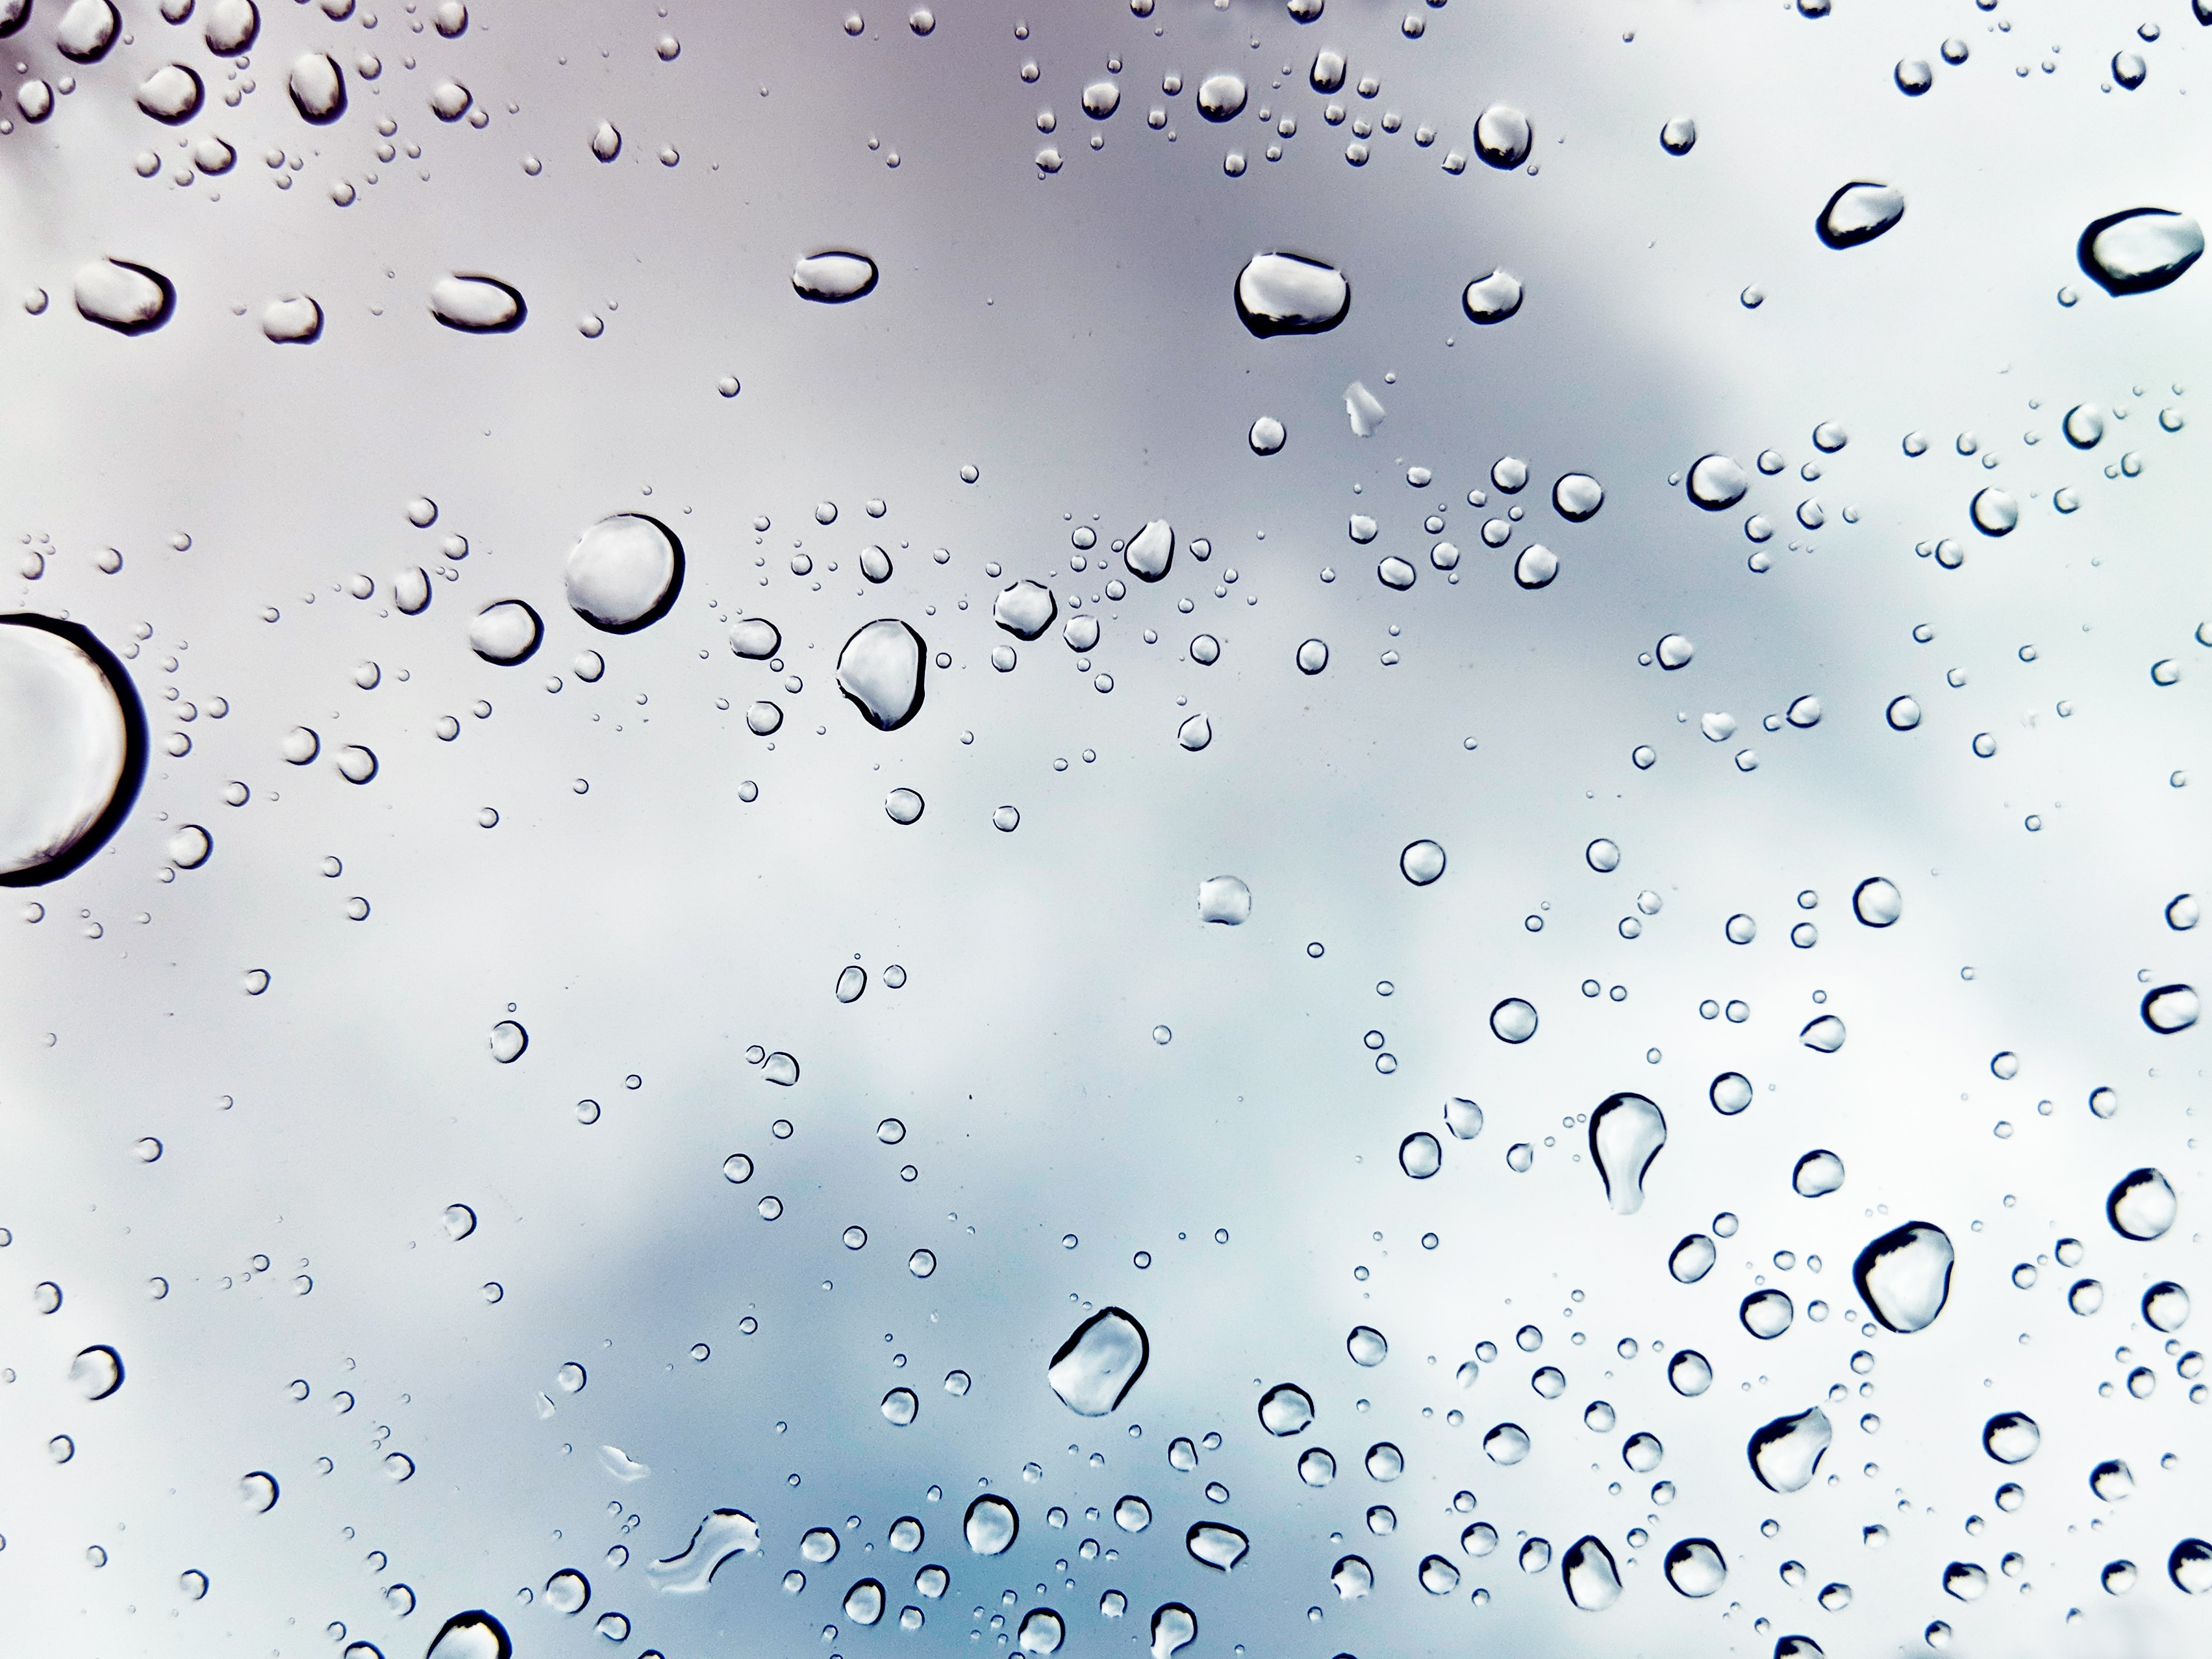 water droplets on a pane of glass